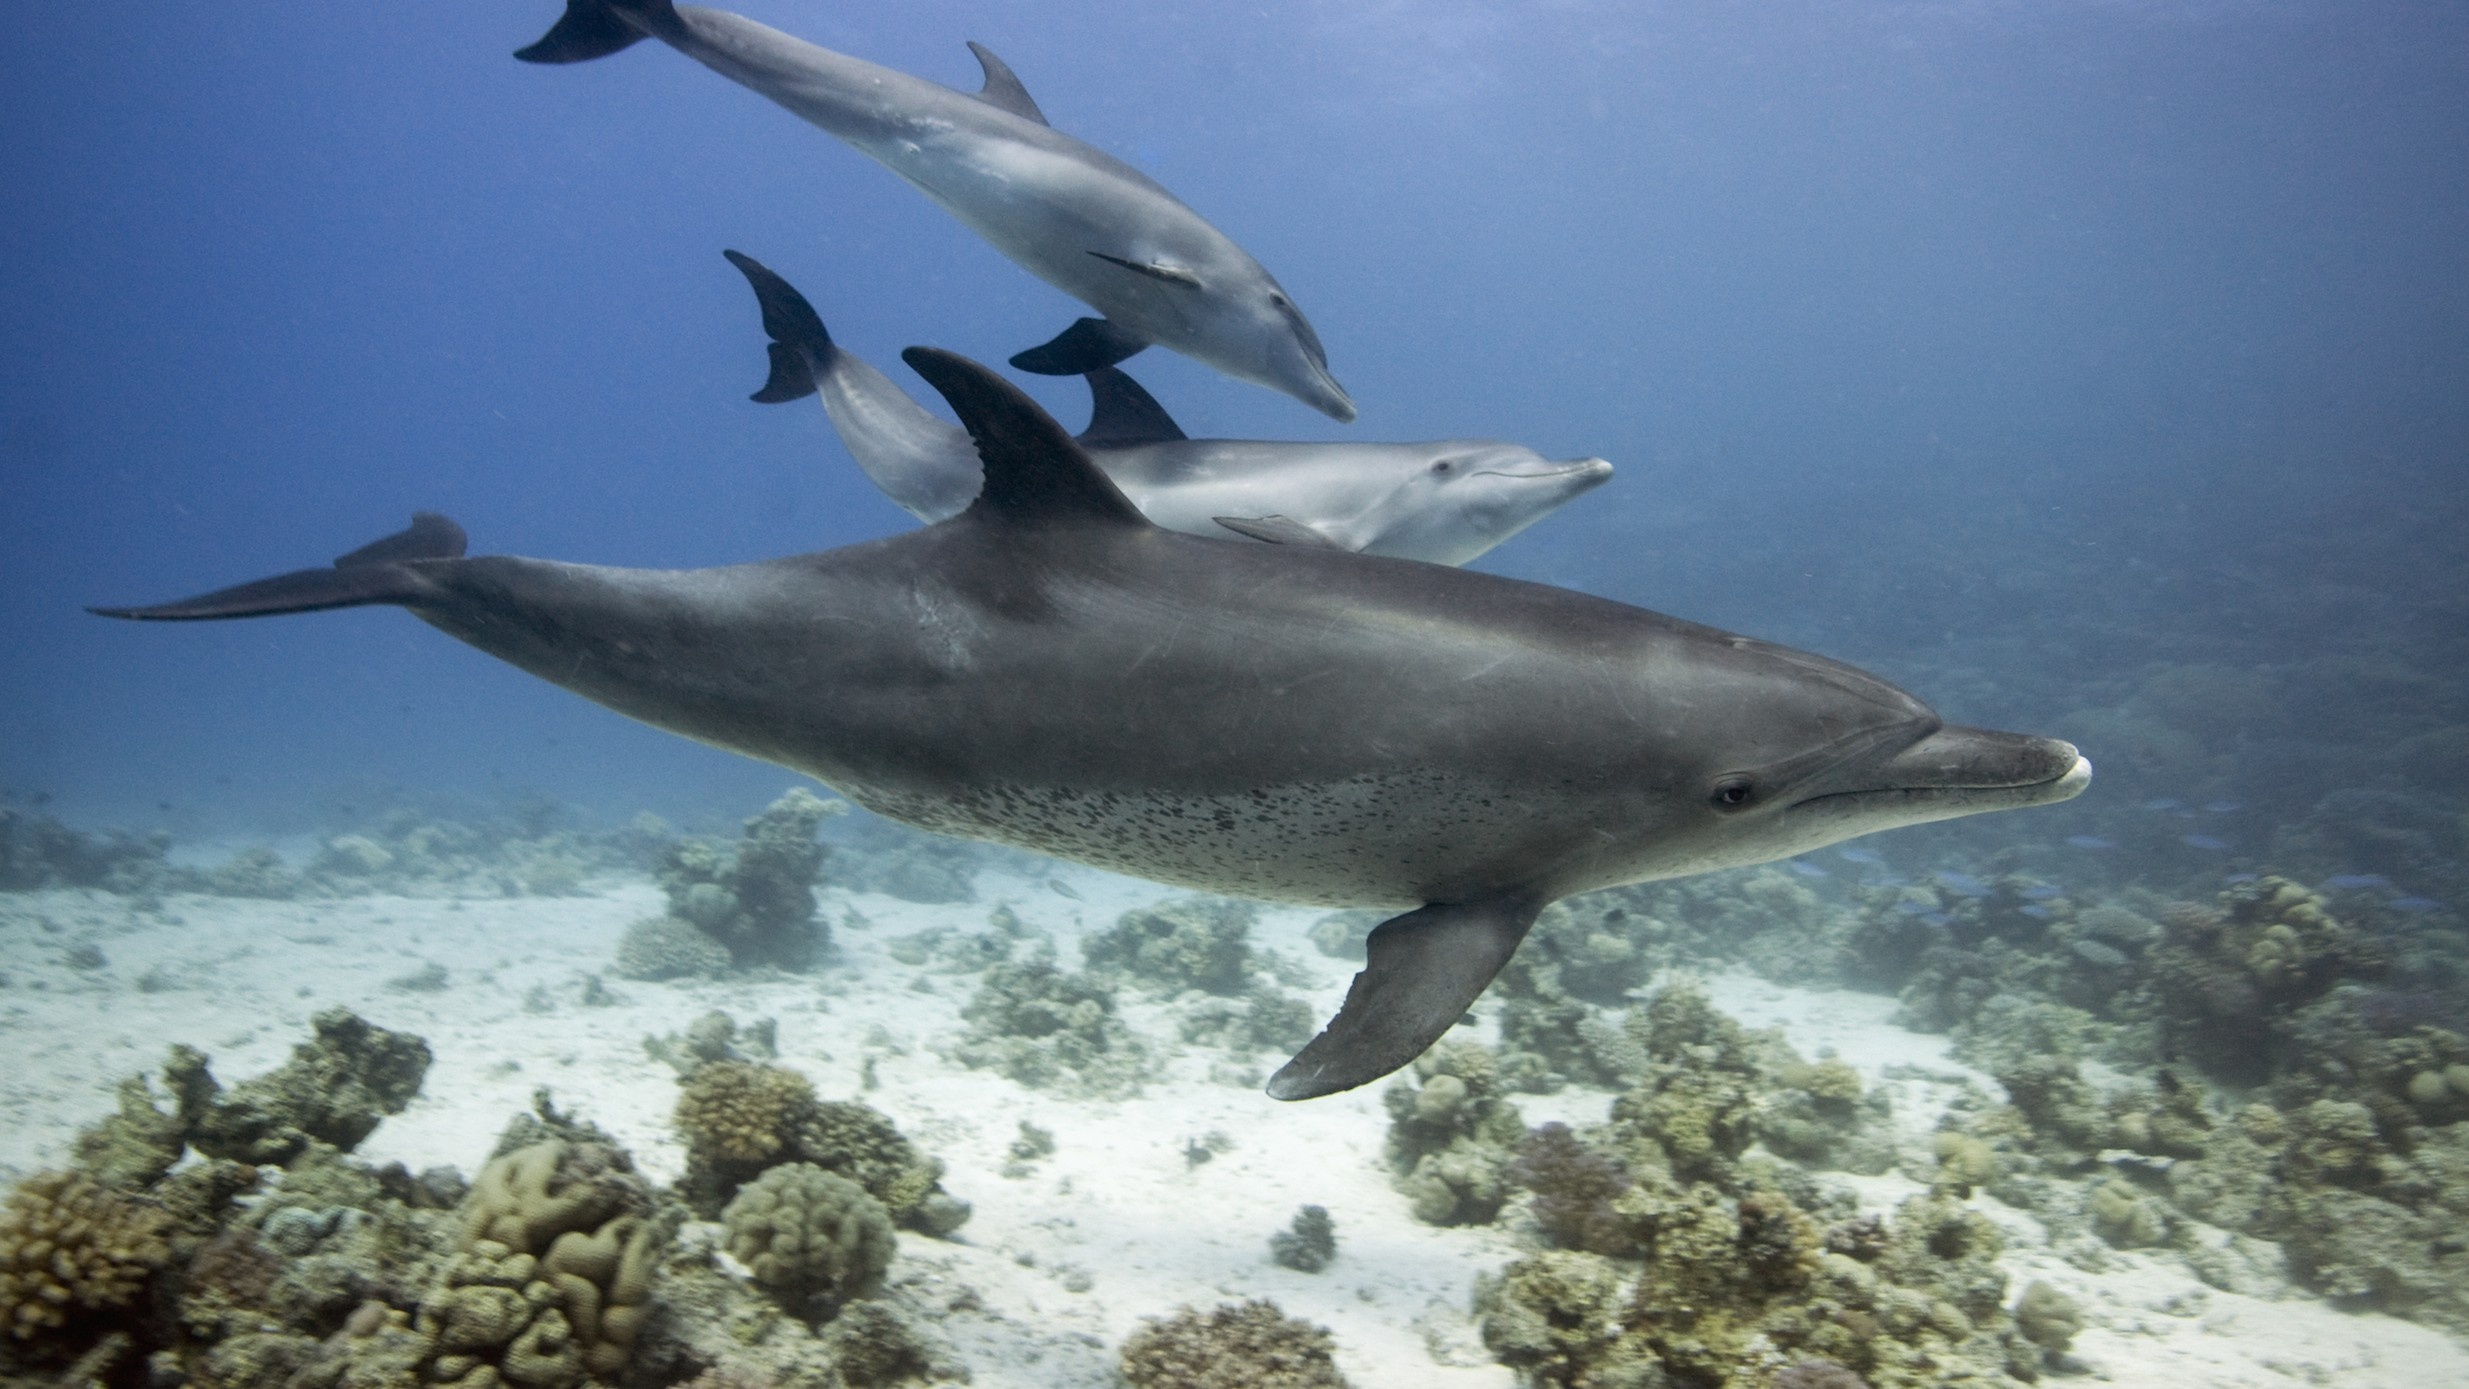 This Dolphin Breathalyzer Hopes to Find Disease, Not Booze